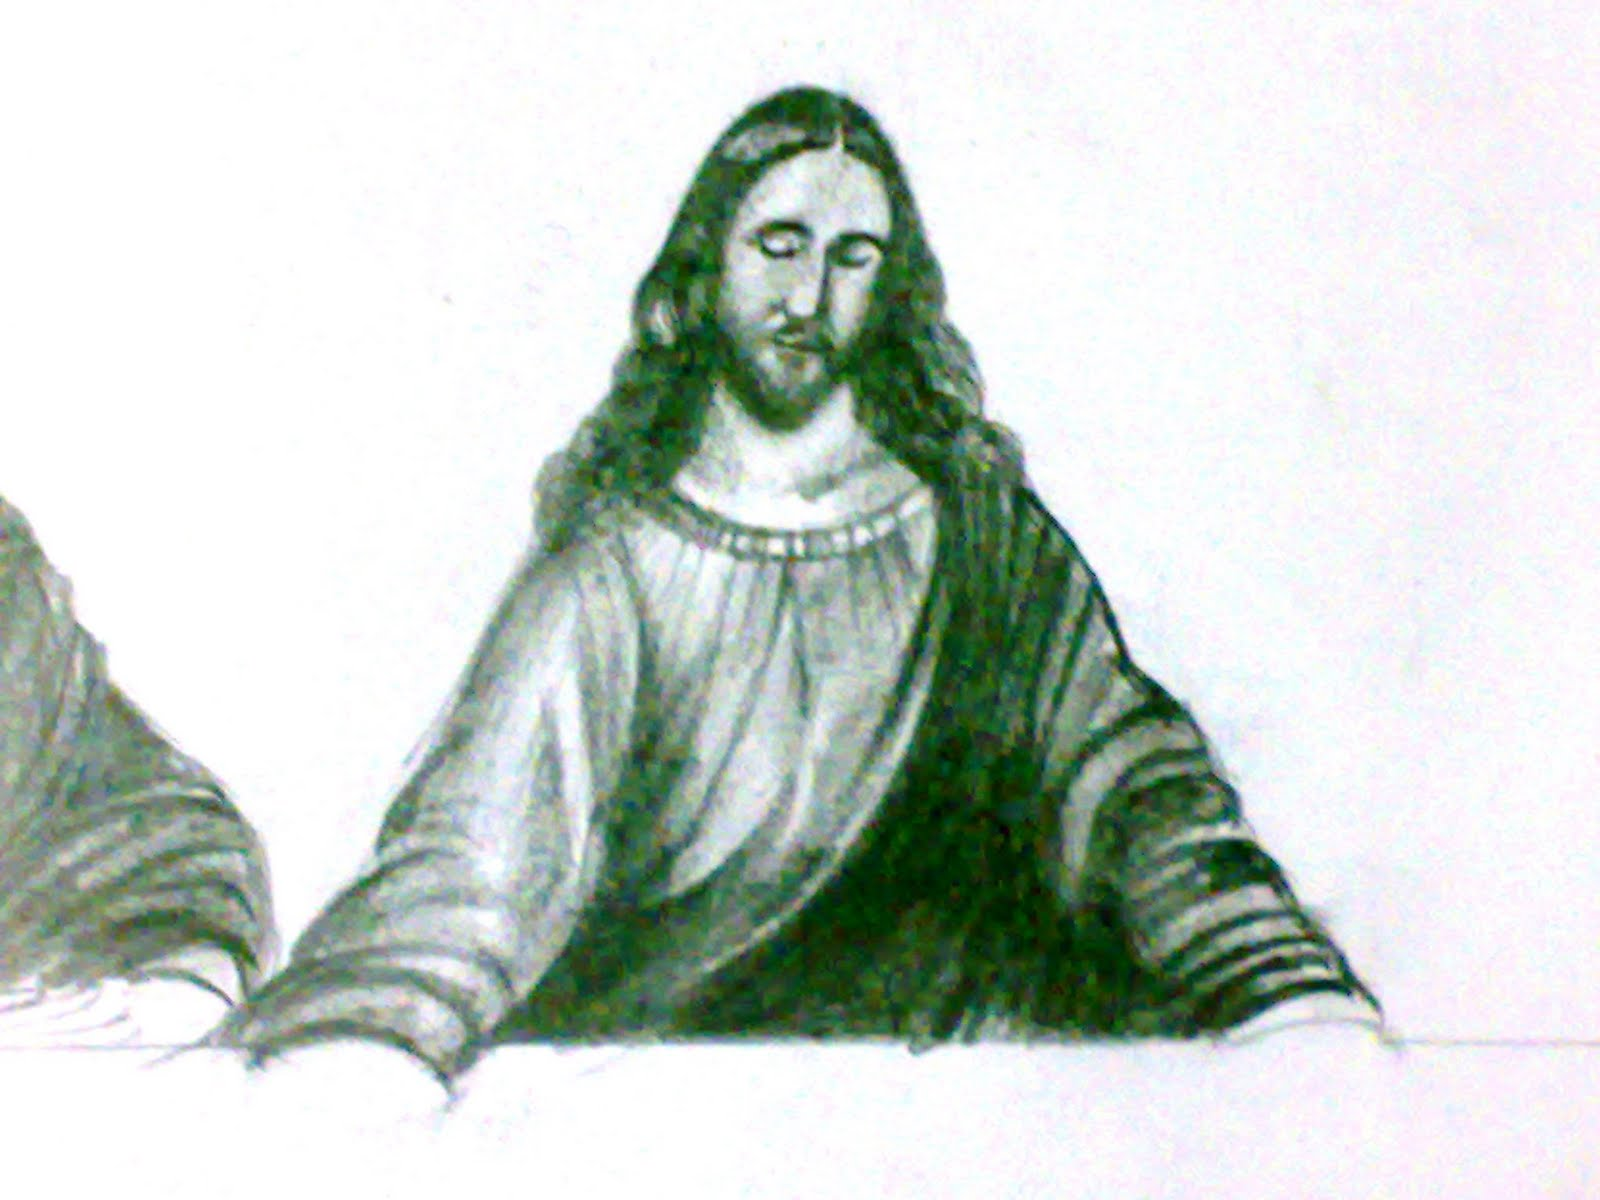 In the fictional book the da vinci code daniel brown has his character teabing suggest that the figure seated to jesus right is not the disciple john